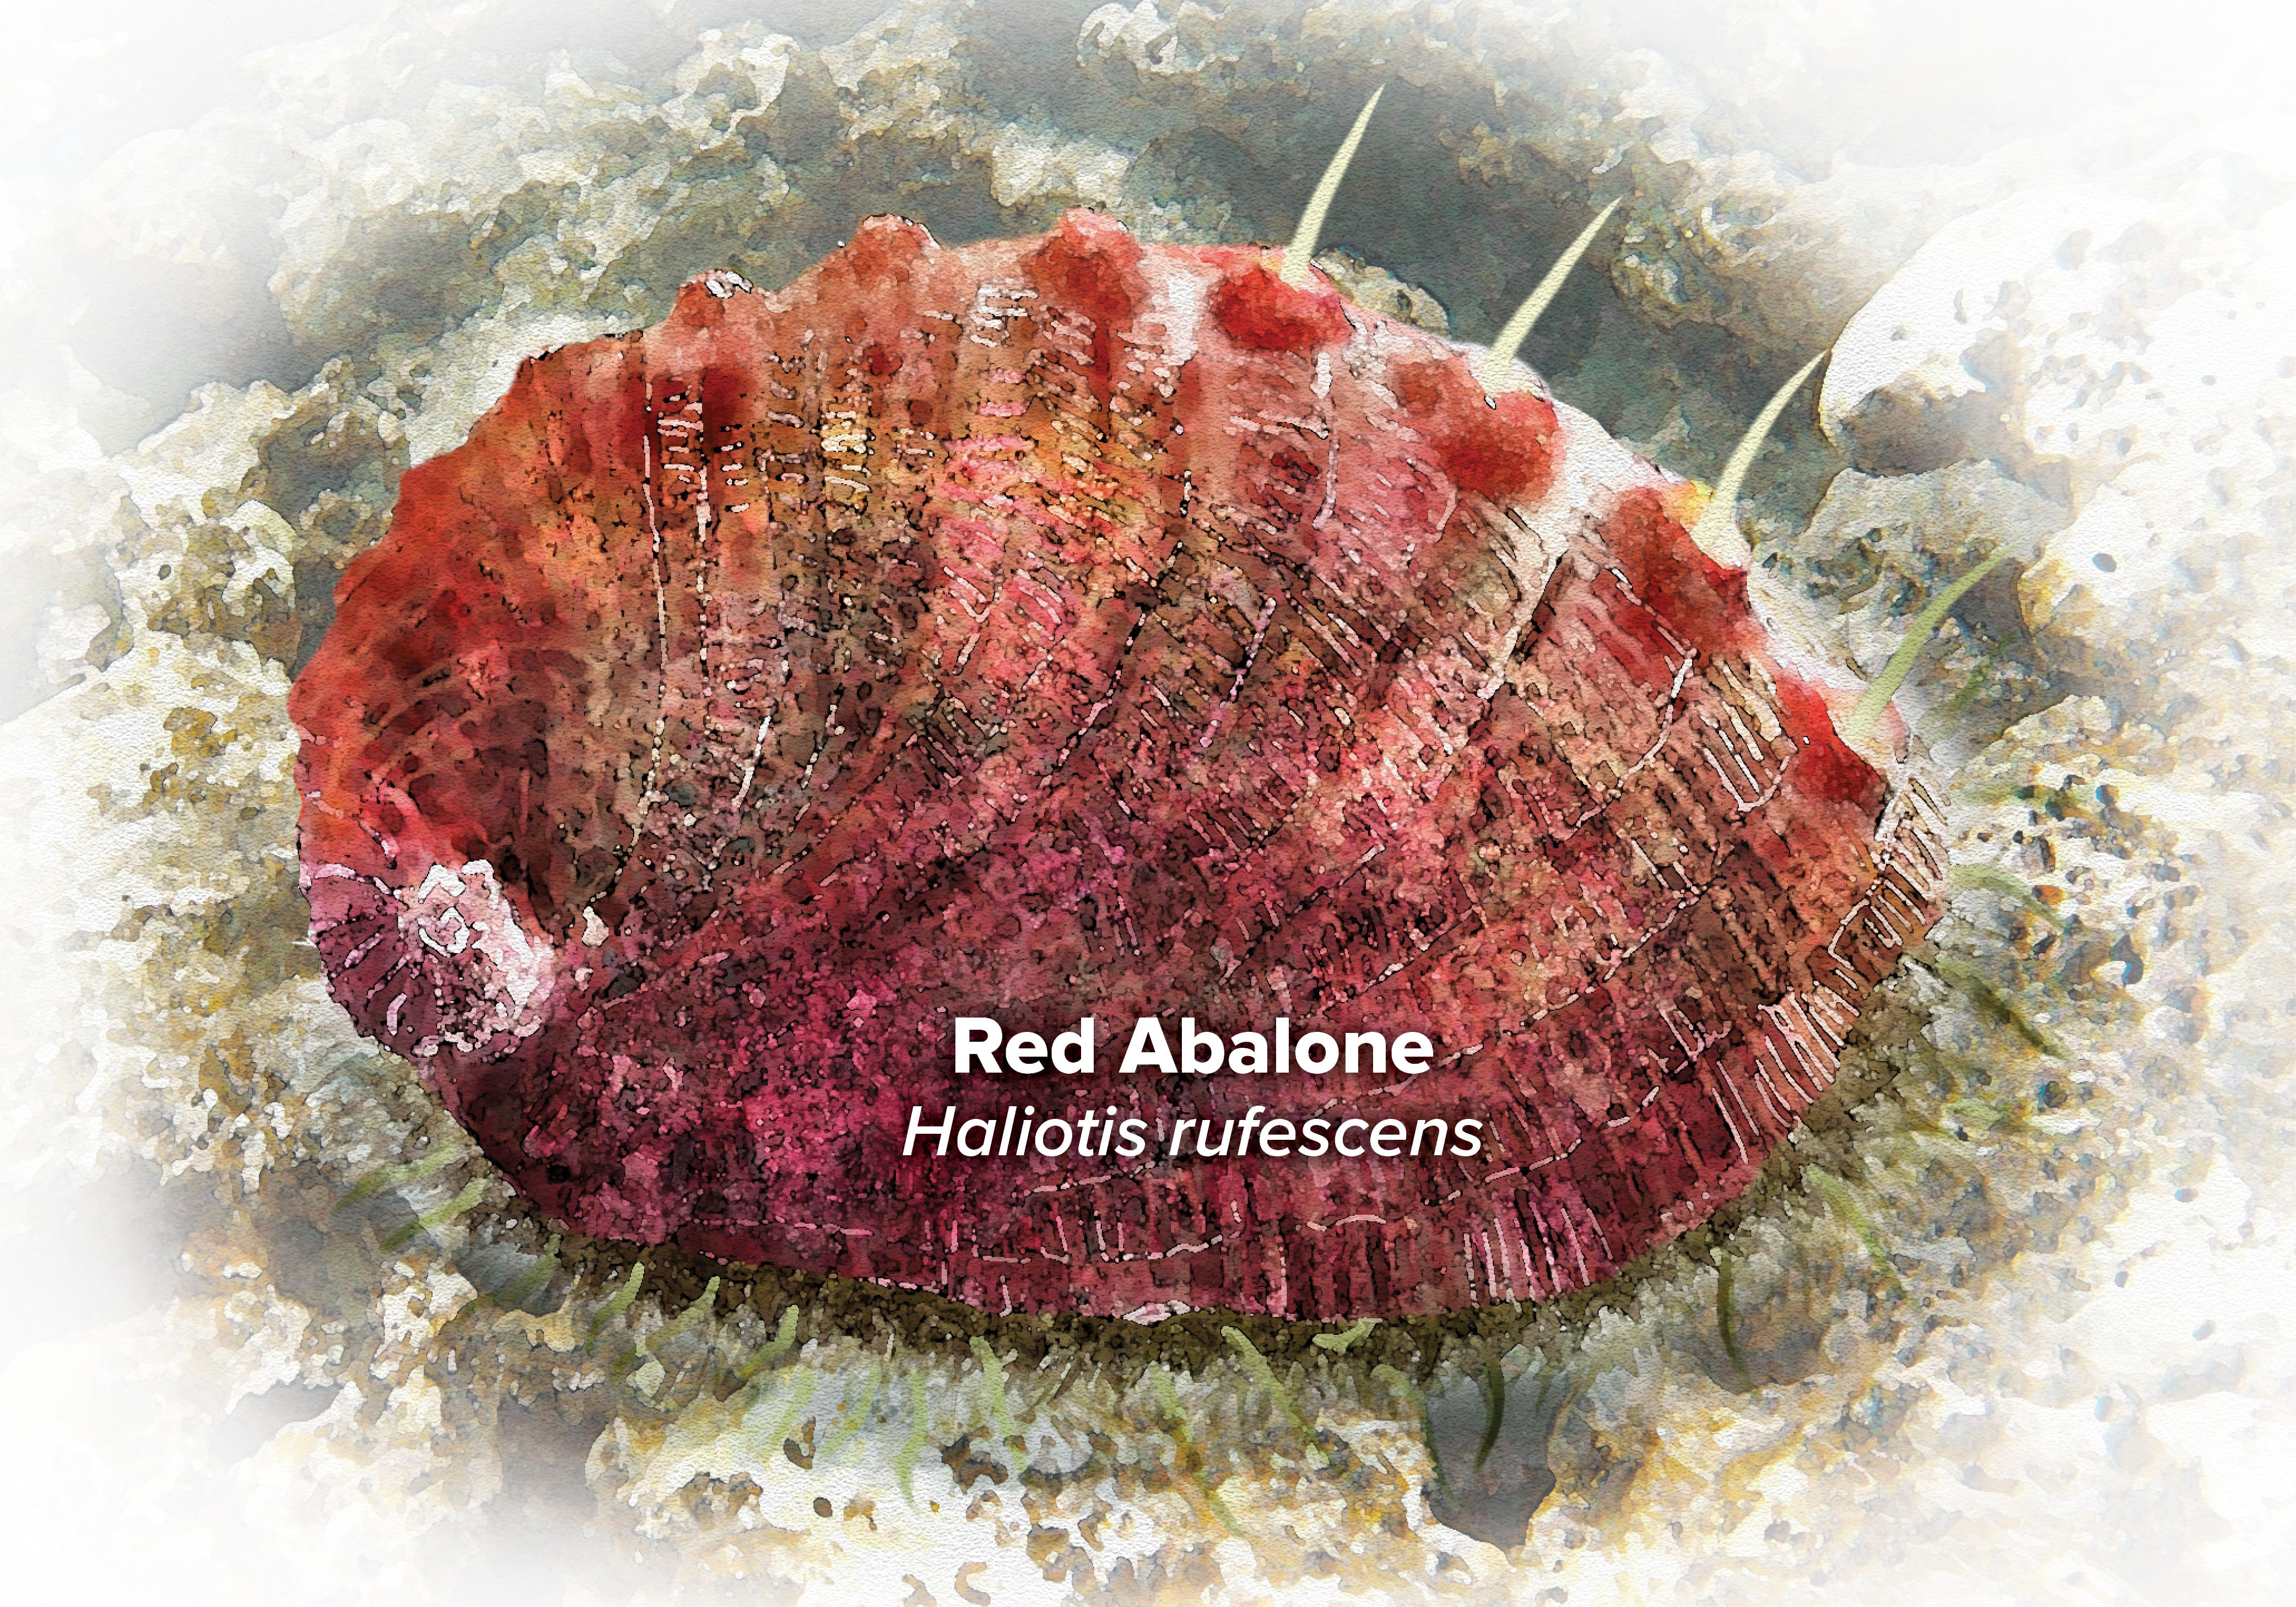 Watercolor illustration of a Red Abalone